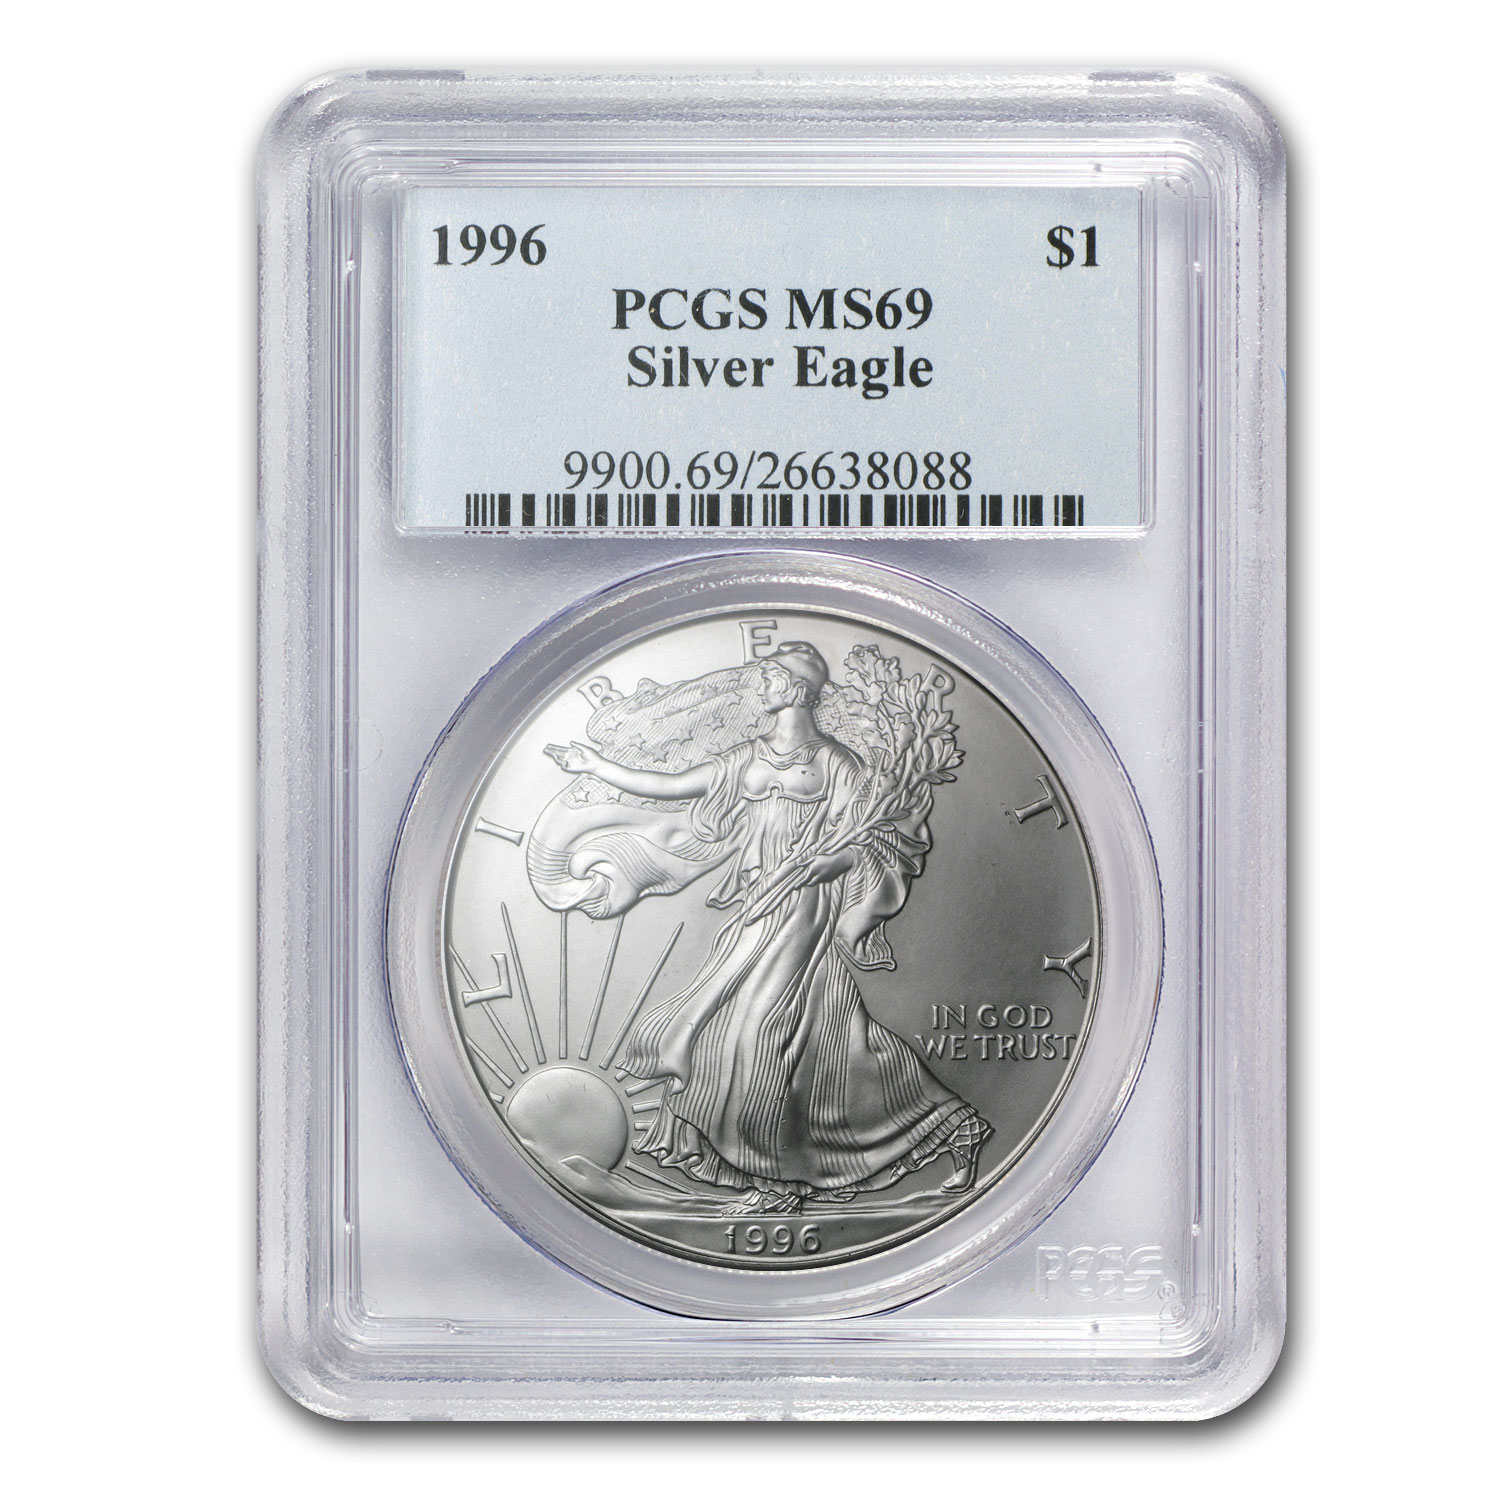 1986-2014 29-Coin Silver Eagle Set MS-69 PCGS (PCGS Box)